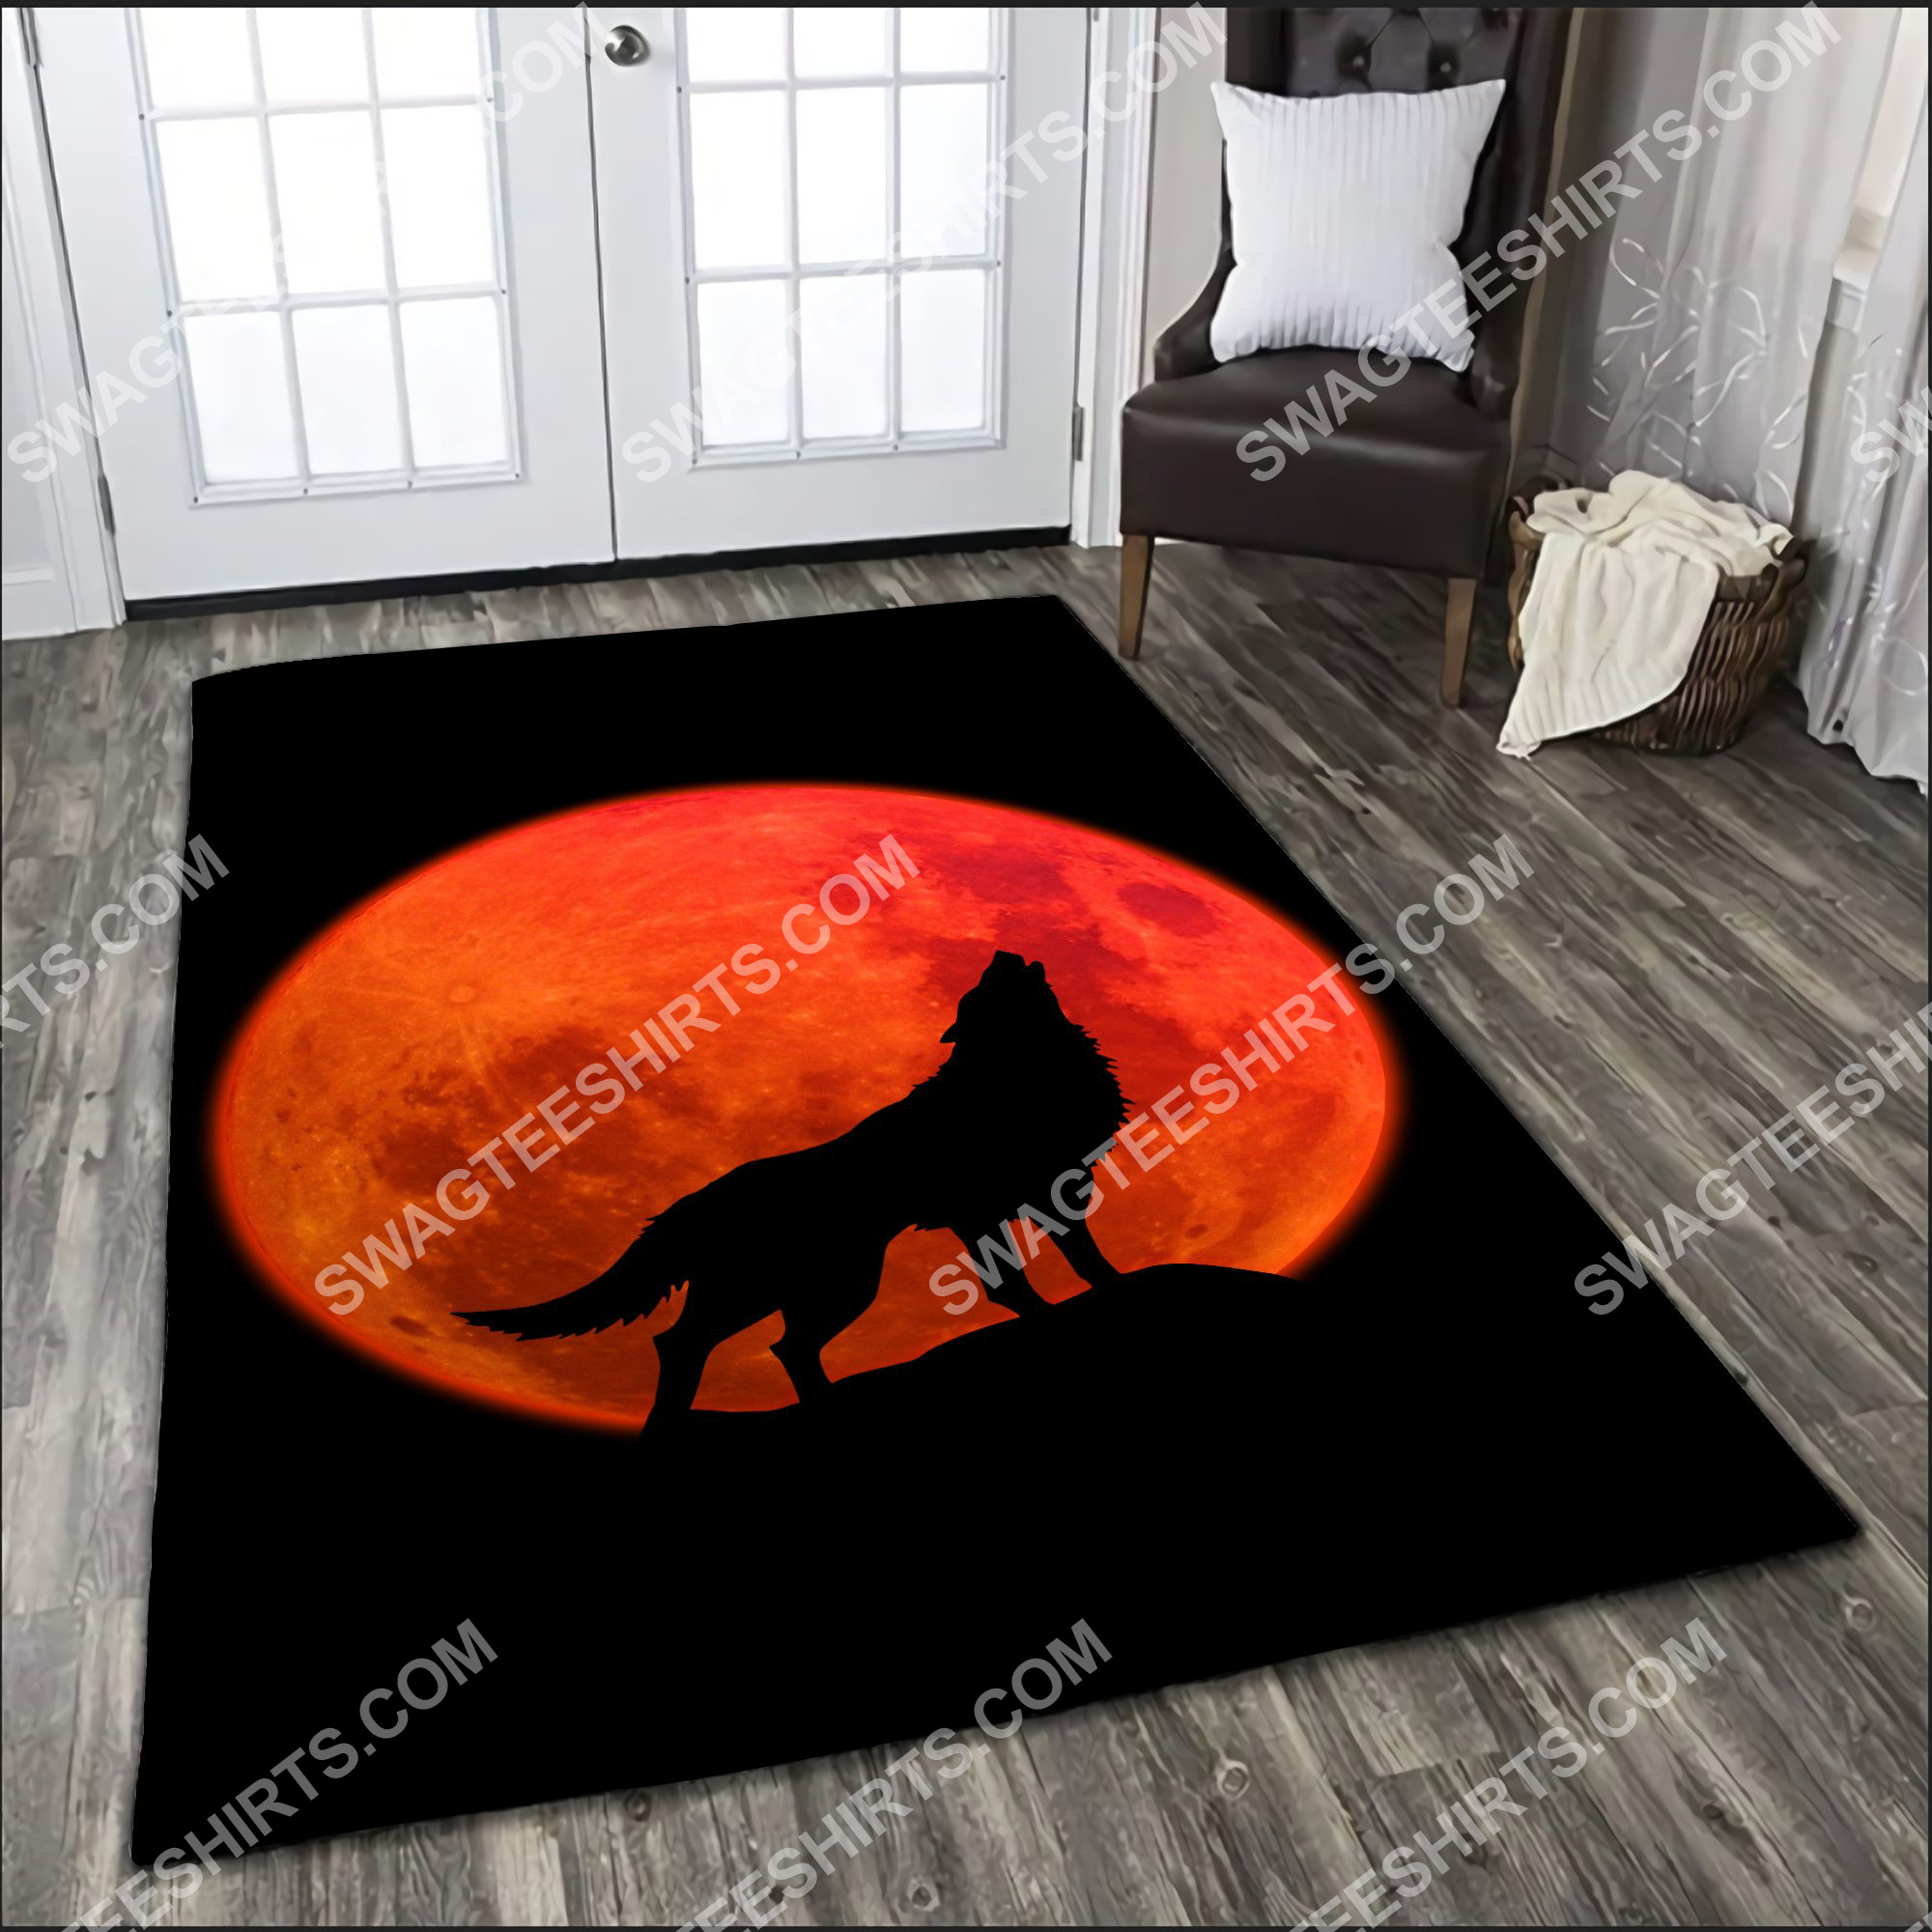 the wolf in red moon all over printed rug 2(1)